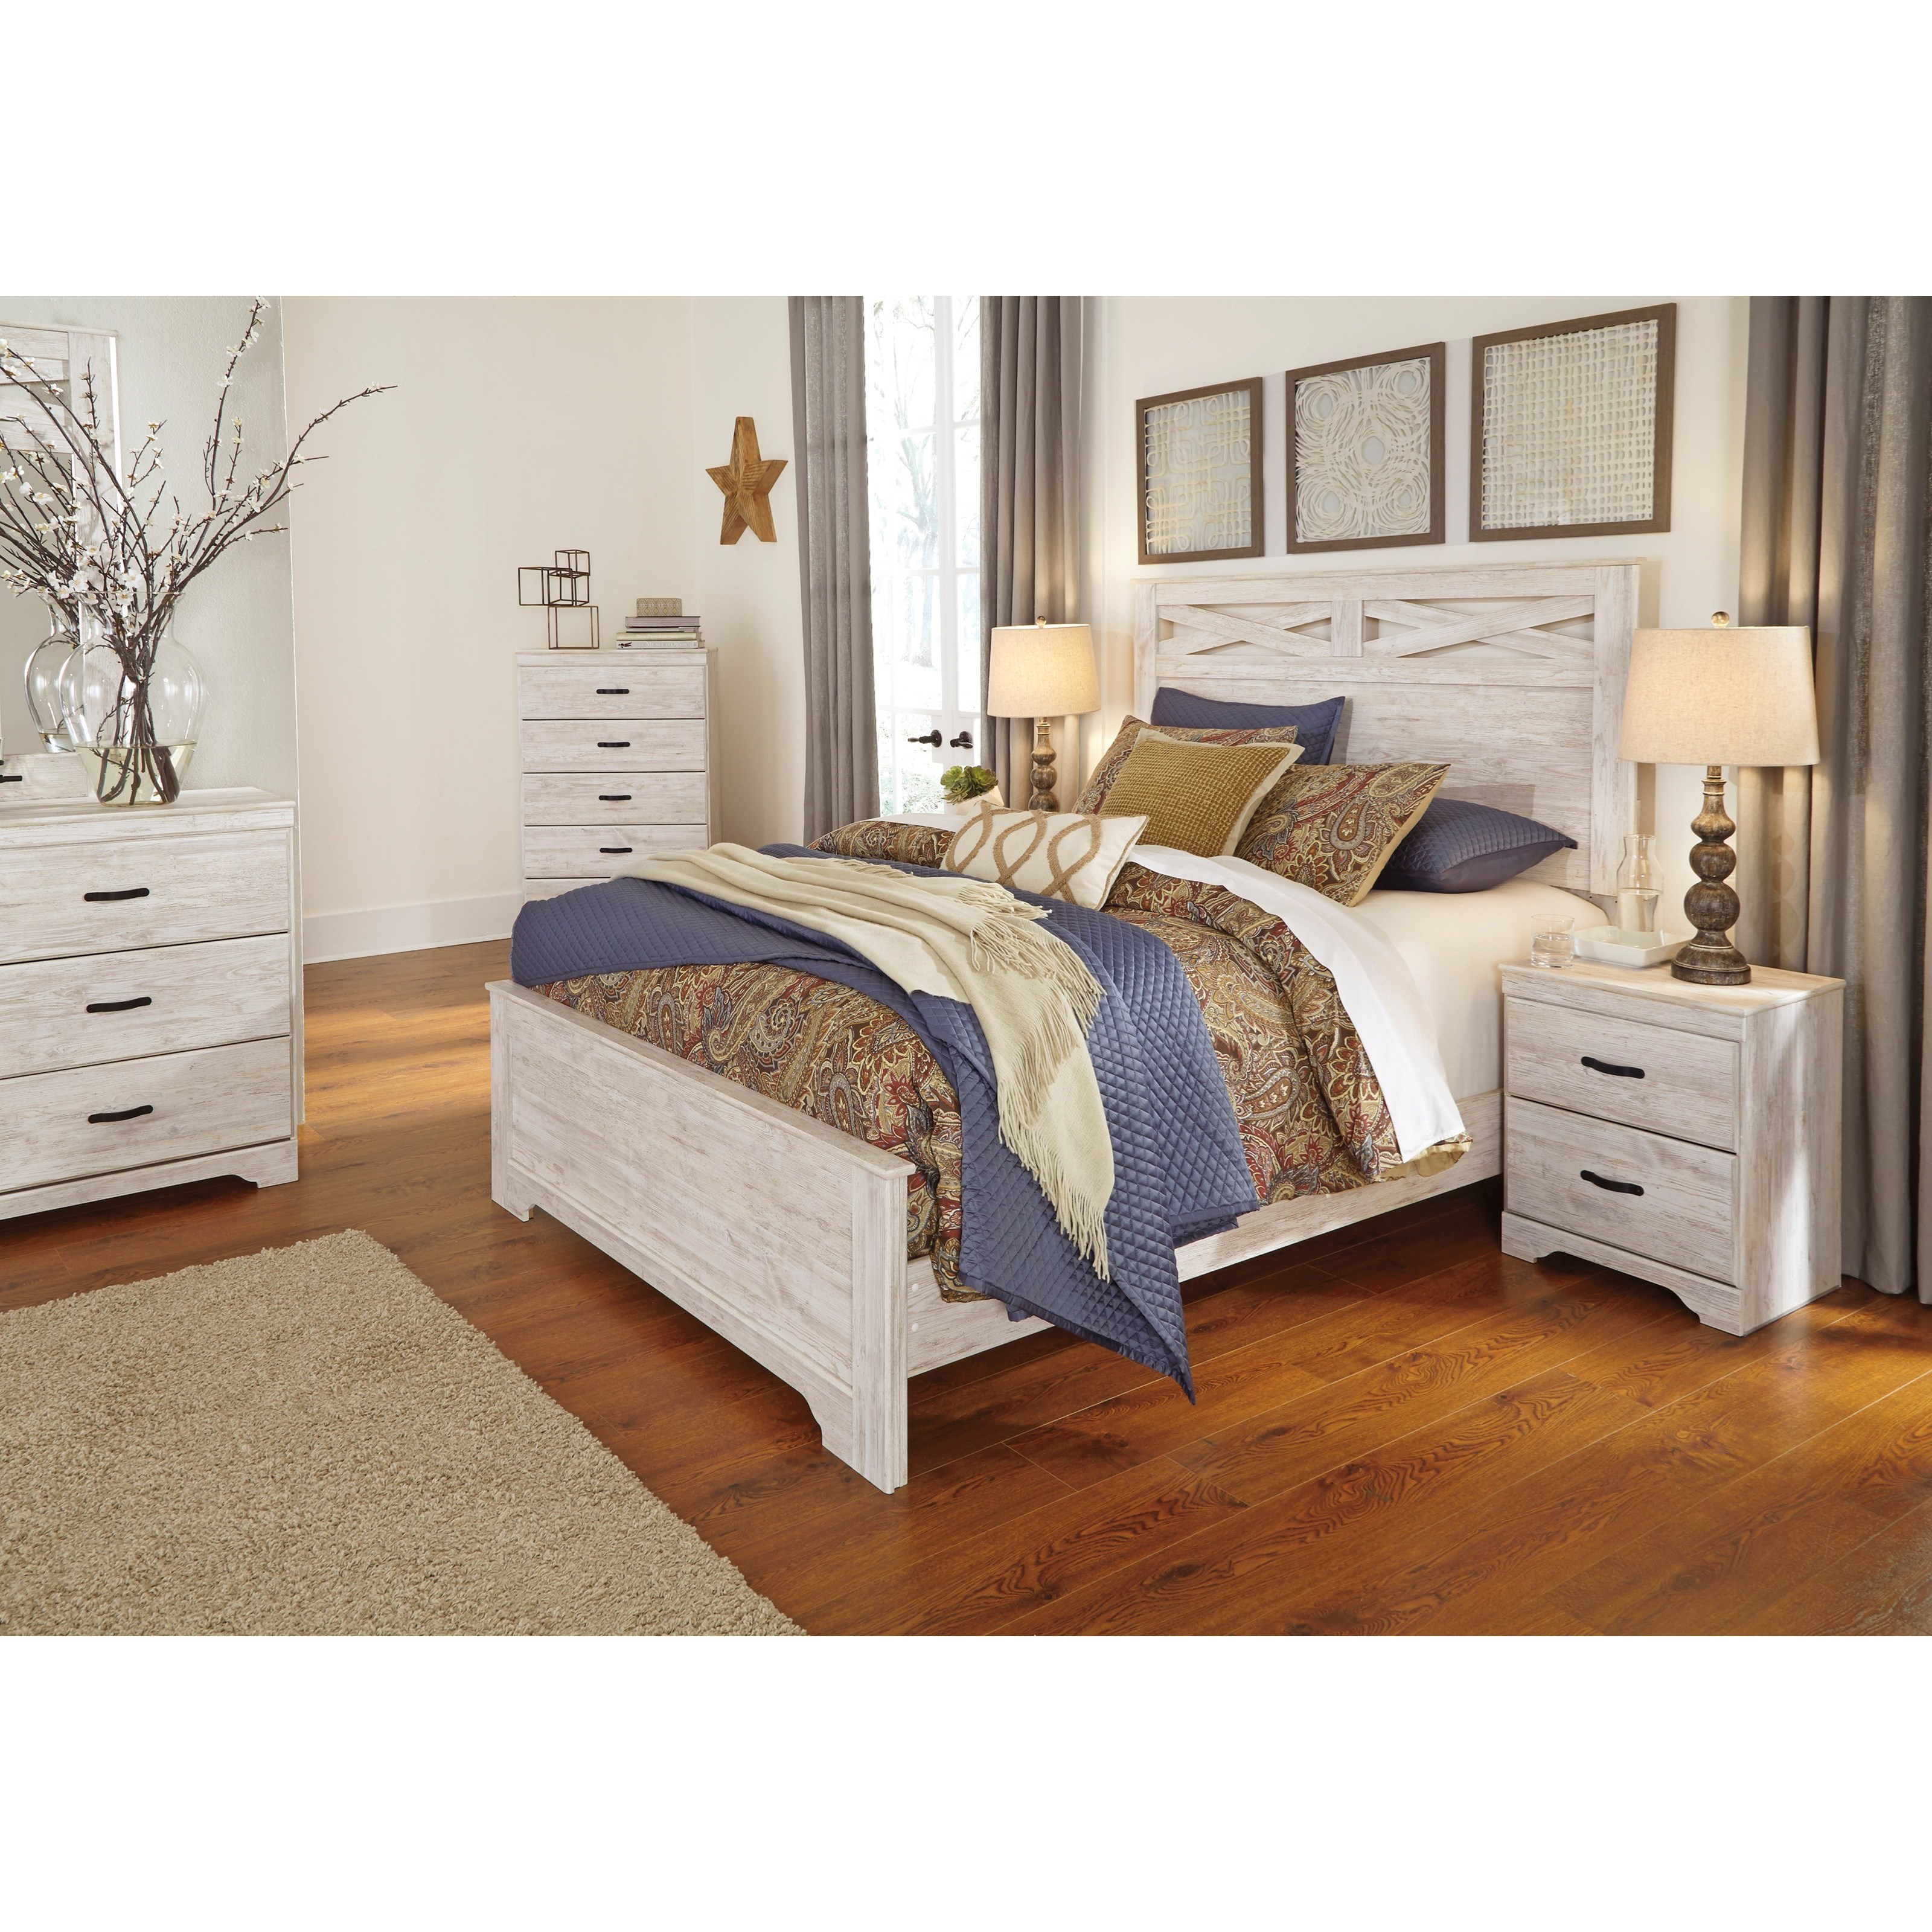 Signature Design By Ashley Briartown Queen Panel Bed In Rustic White Finish Houston 39 S Yuma